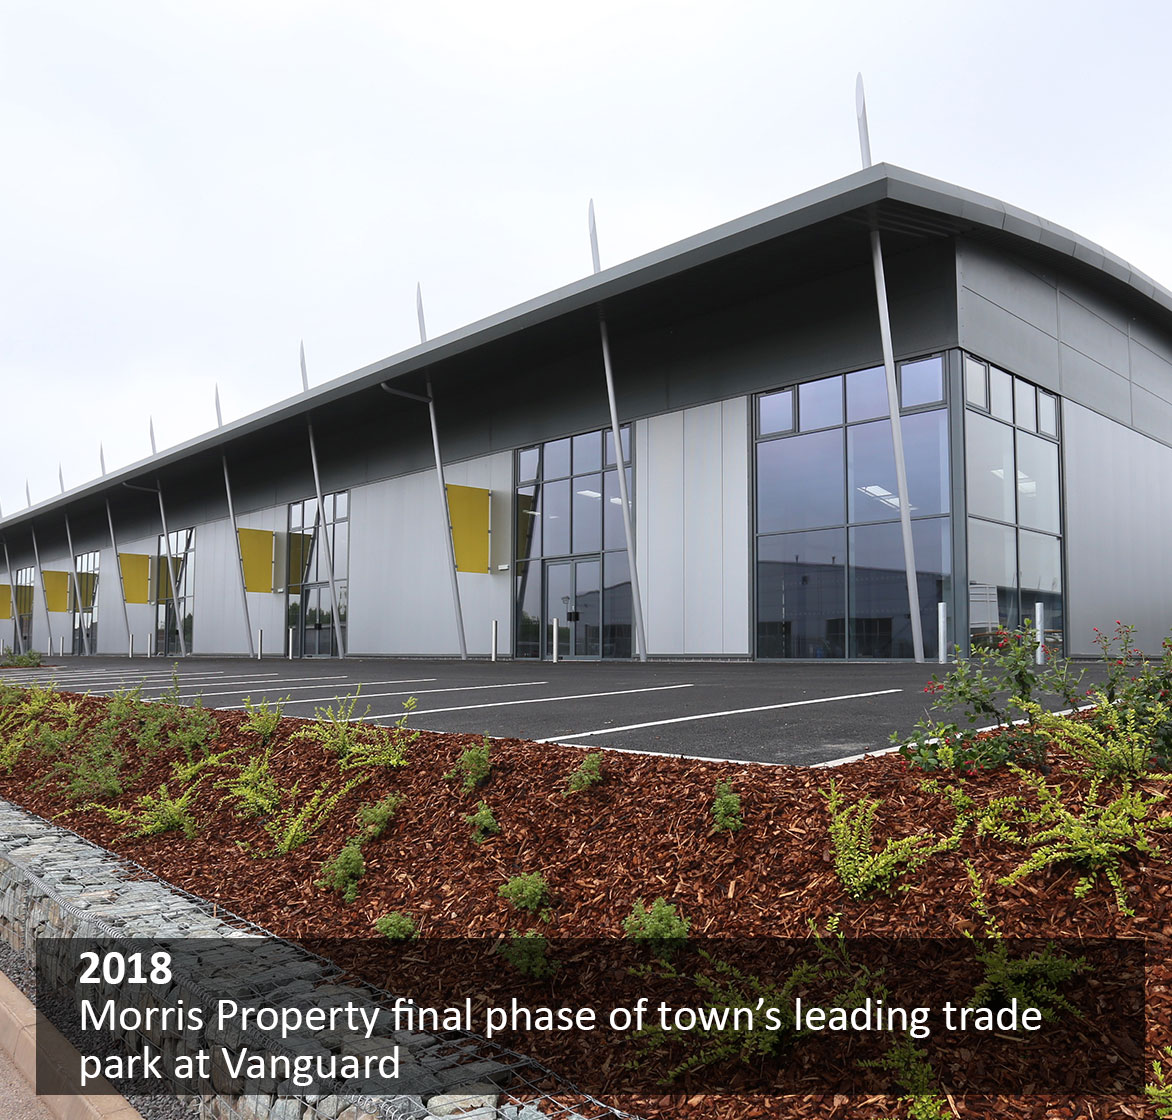 Morris Property final phase of town's leading trade park at Vanguard